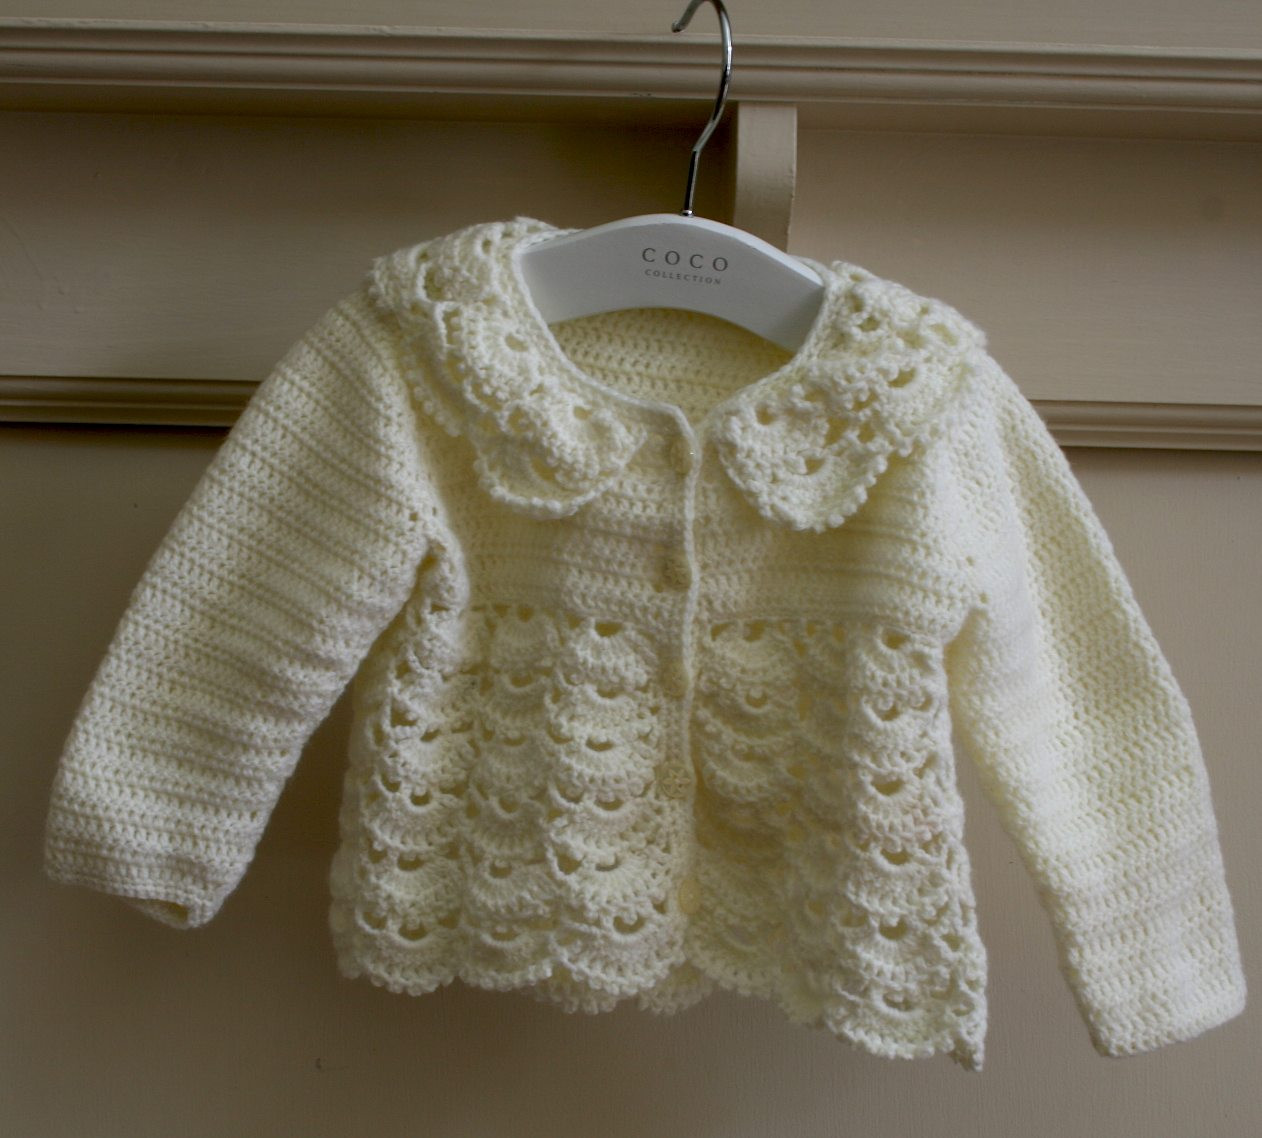 Free Crochet Patterns for Babies Cardigans Awesome Zurbahan Blog August 2013 Of Superb 45 Models Free Crochet Patterns for Babies Cardigans